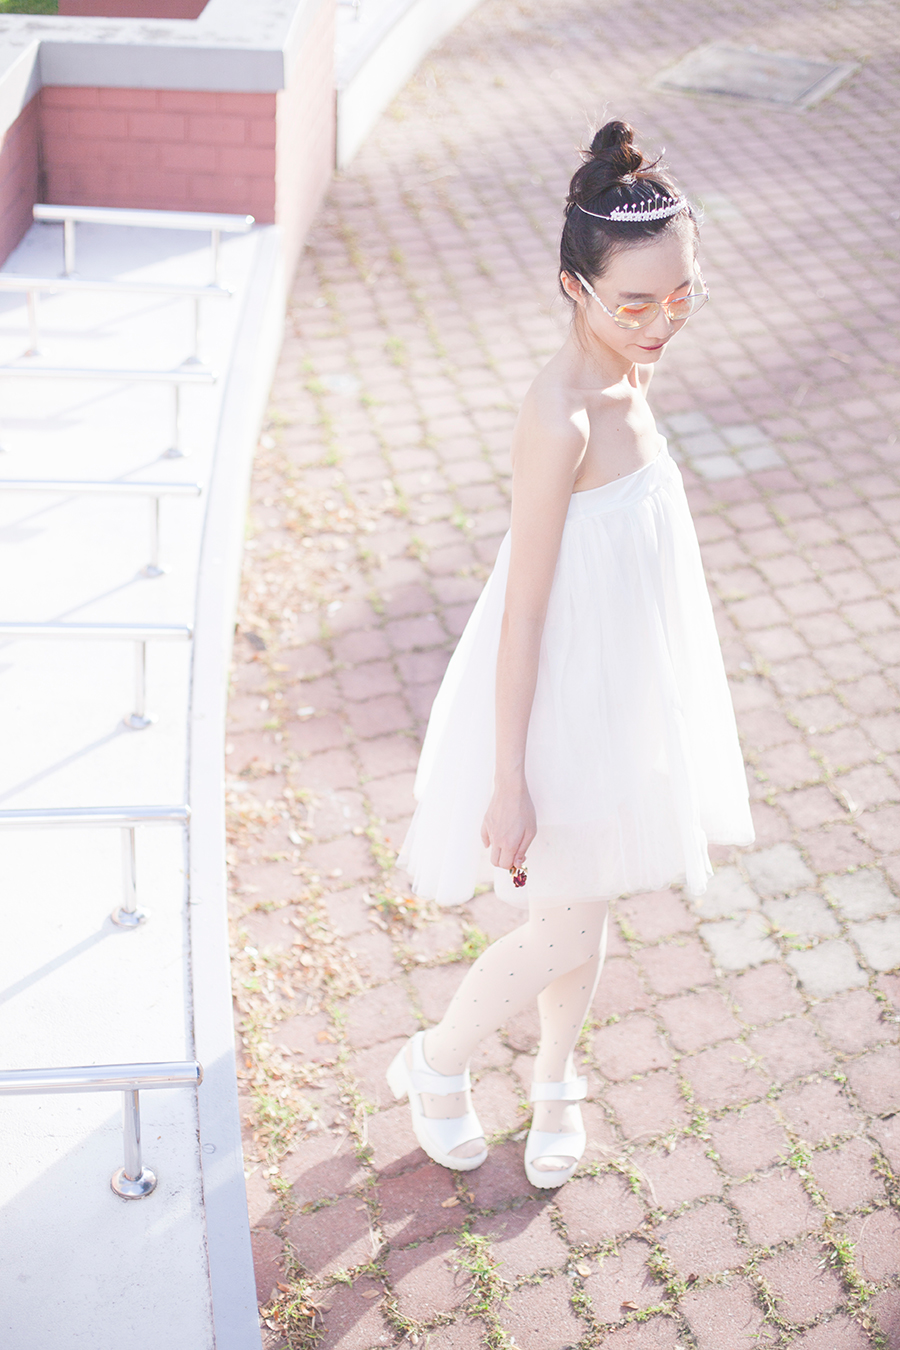 Princess outfit: Irresistible Me silver Aurora Tiara hair accessory, DressLink white tulle tutu skirt, Sunmill heart print tights from Shanghai, Taobao white platform sandals, Guess iridescent sunglasses.